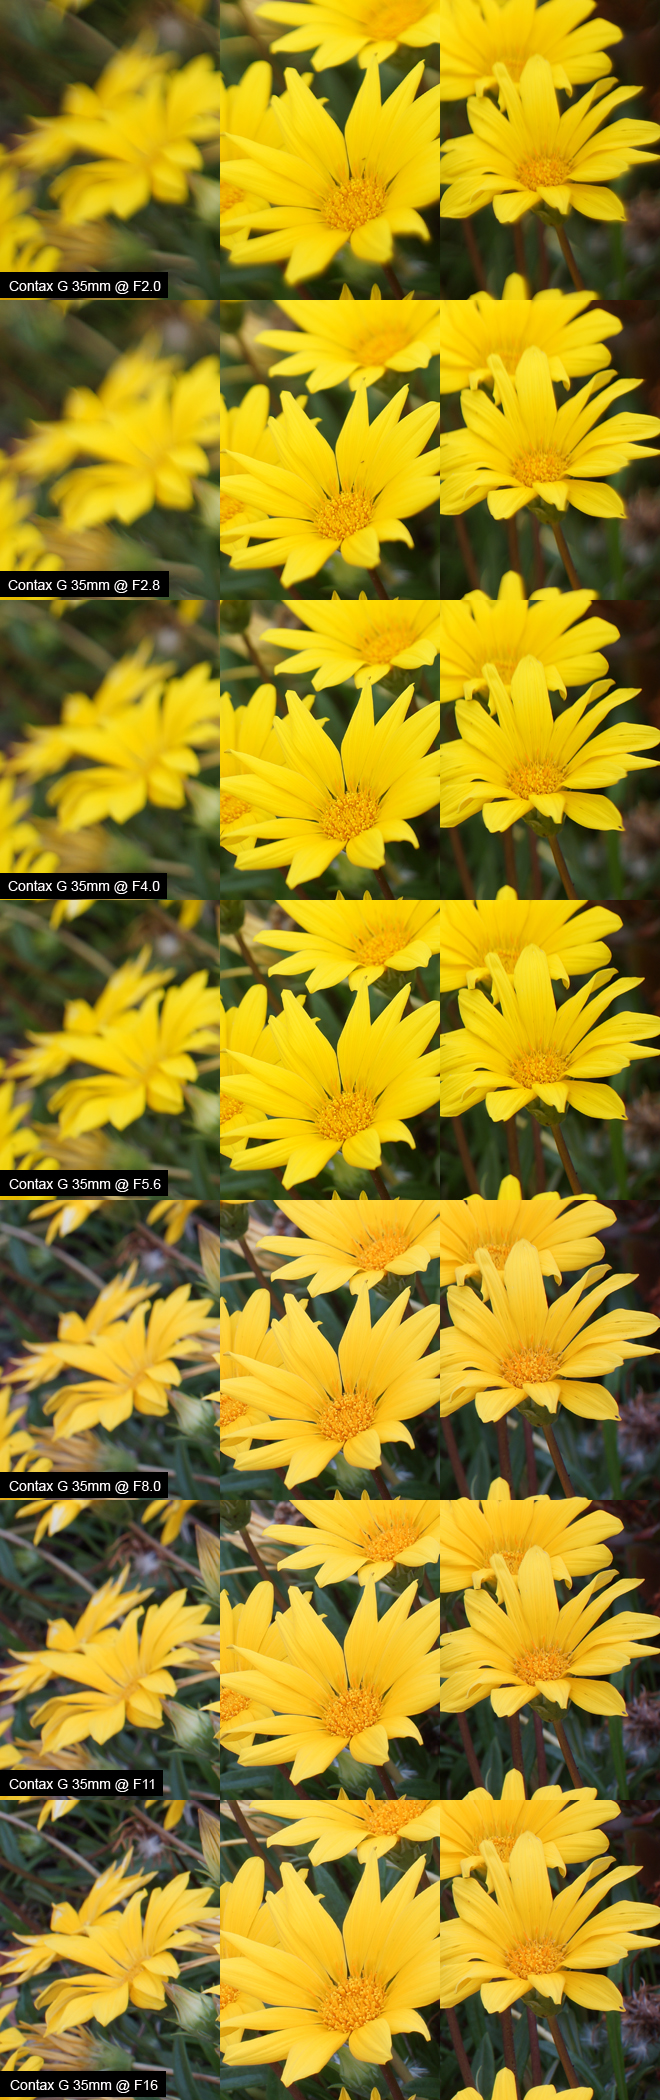 "Contax G 35mm ""Setup Two: Close Up"" Review Results"